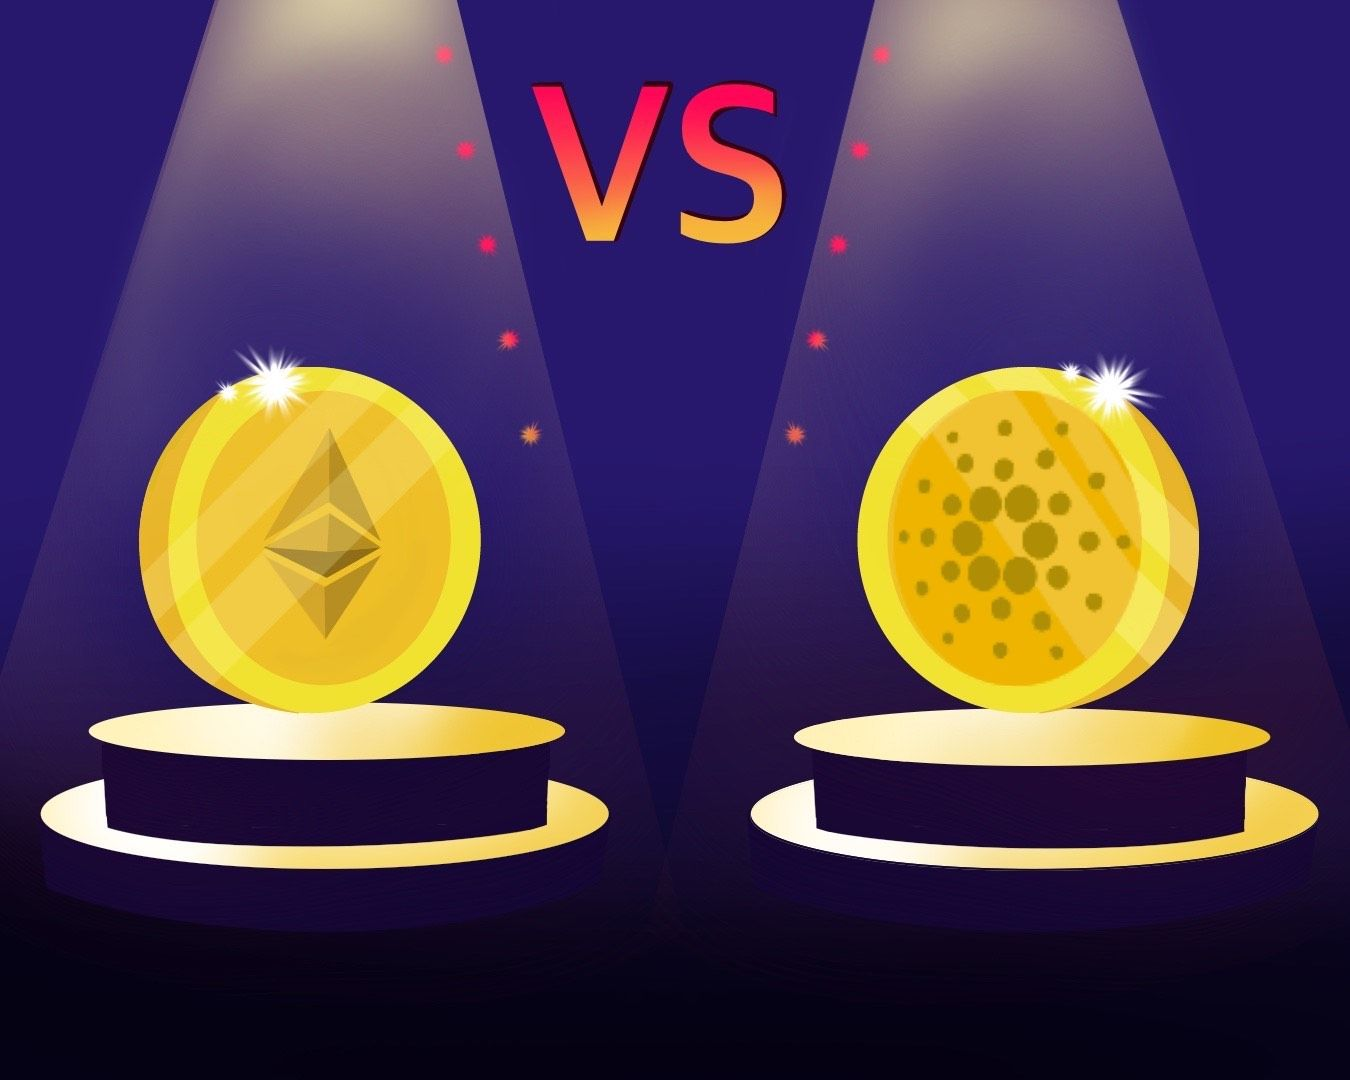 Cardano vs Ethereum: How Are They Different?